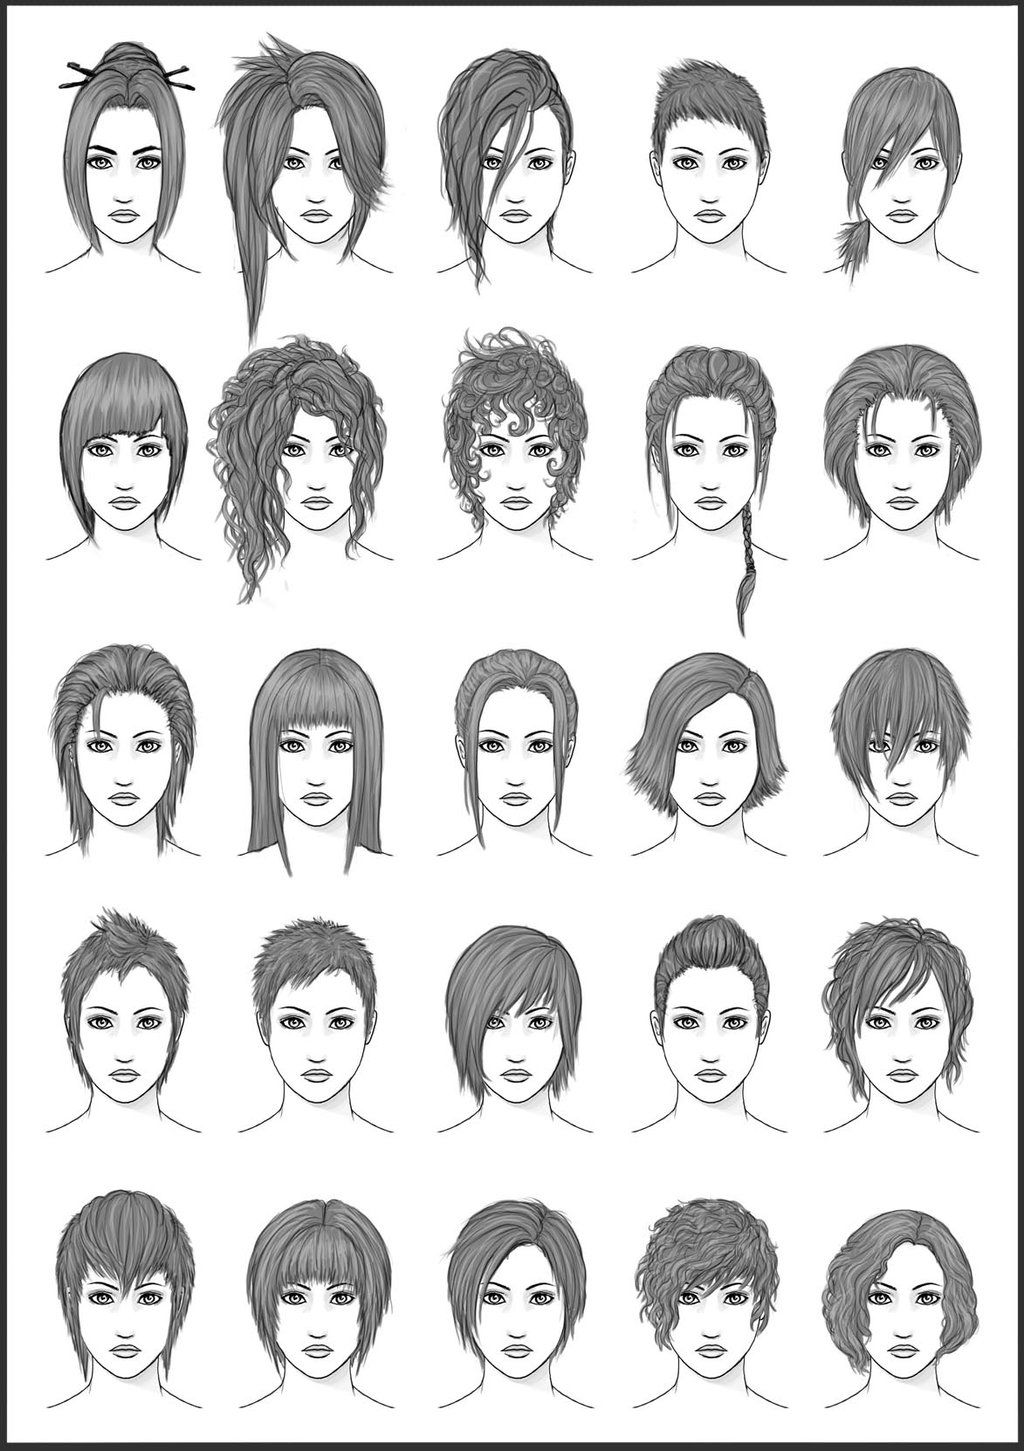 Admirable 1000 Images About Hairstyles On Pinterest Drawing Hair Female Short Hairstyles For Black Women Fulllsitofus